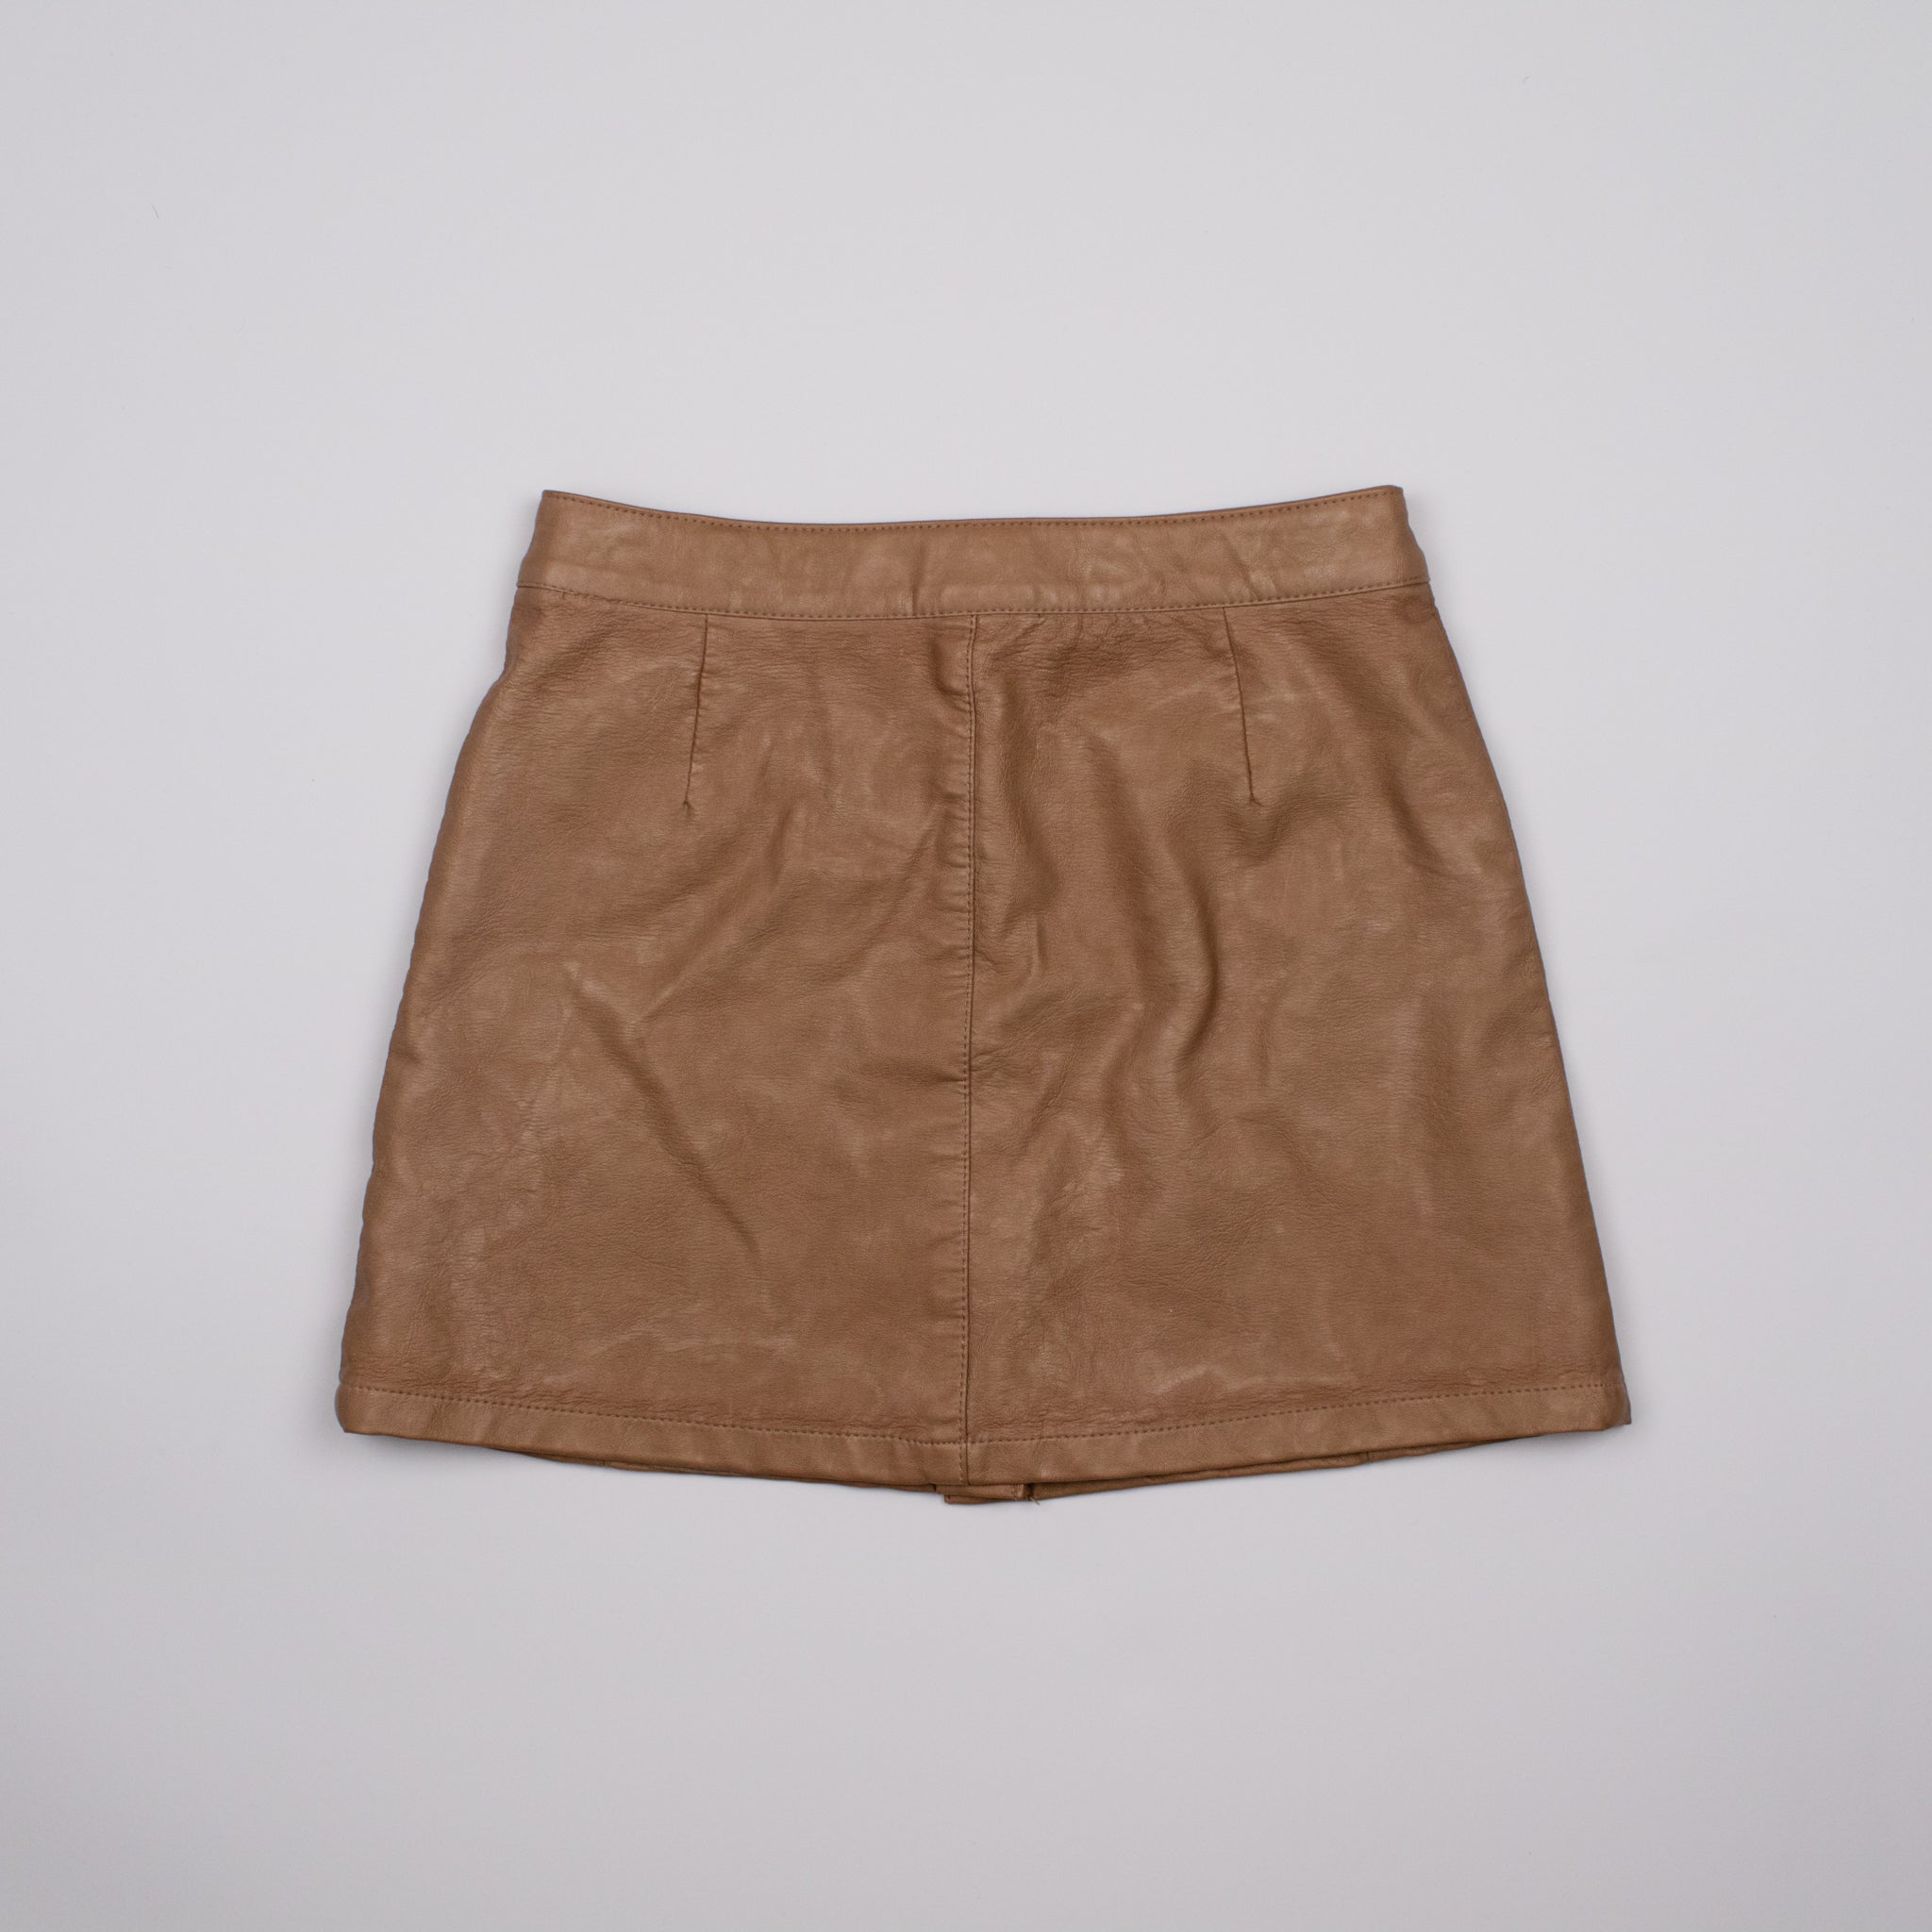 Tan Faux Leather Mini Skirt 8-9Y